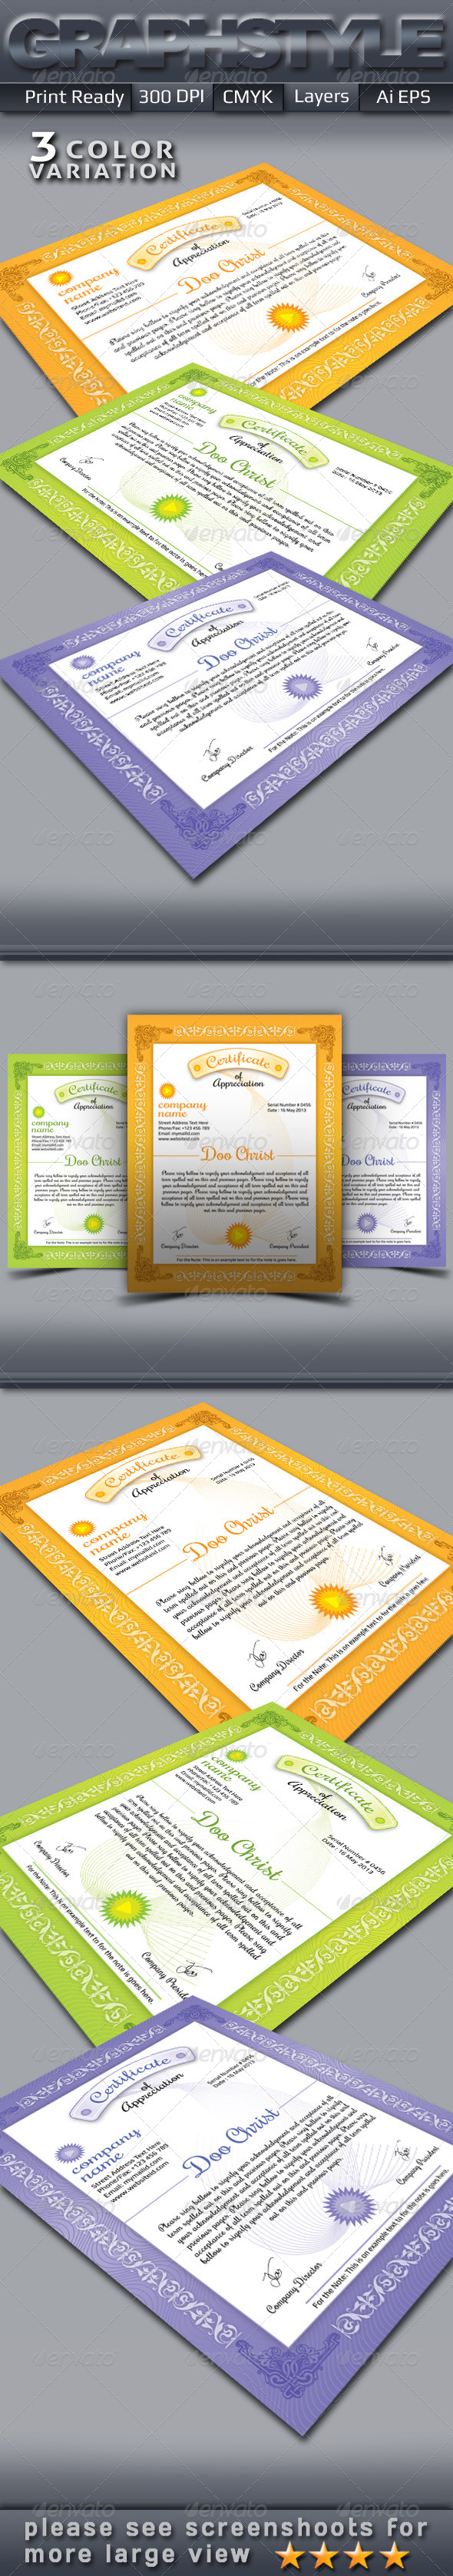 GraphicRiver Certificate Templates 4702575